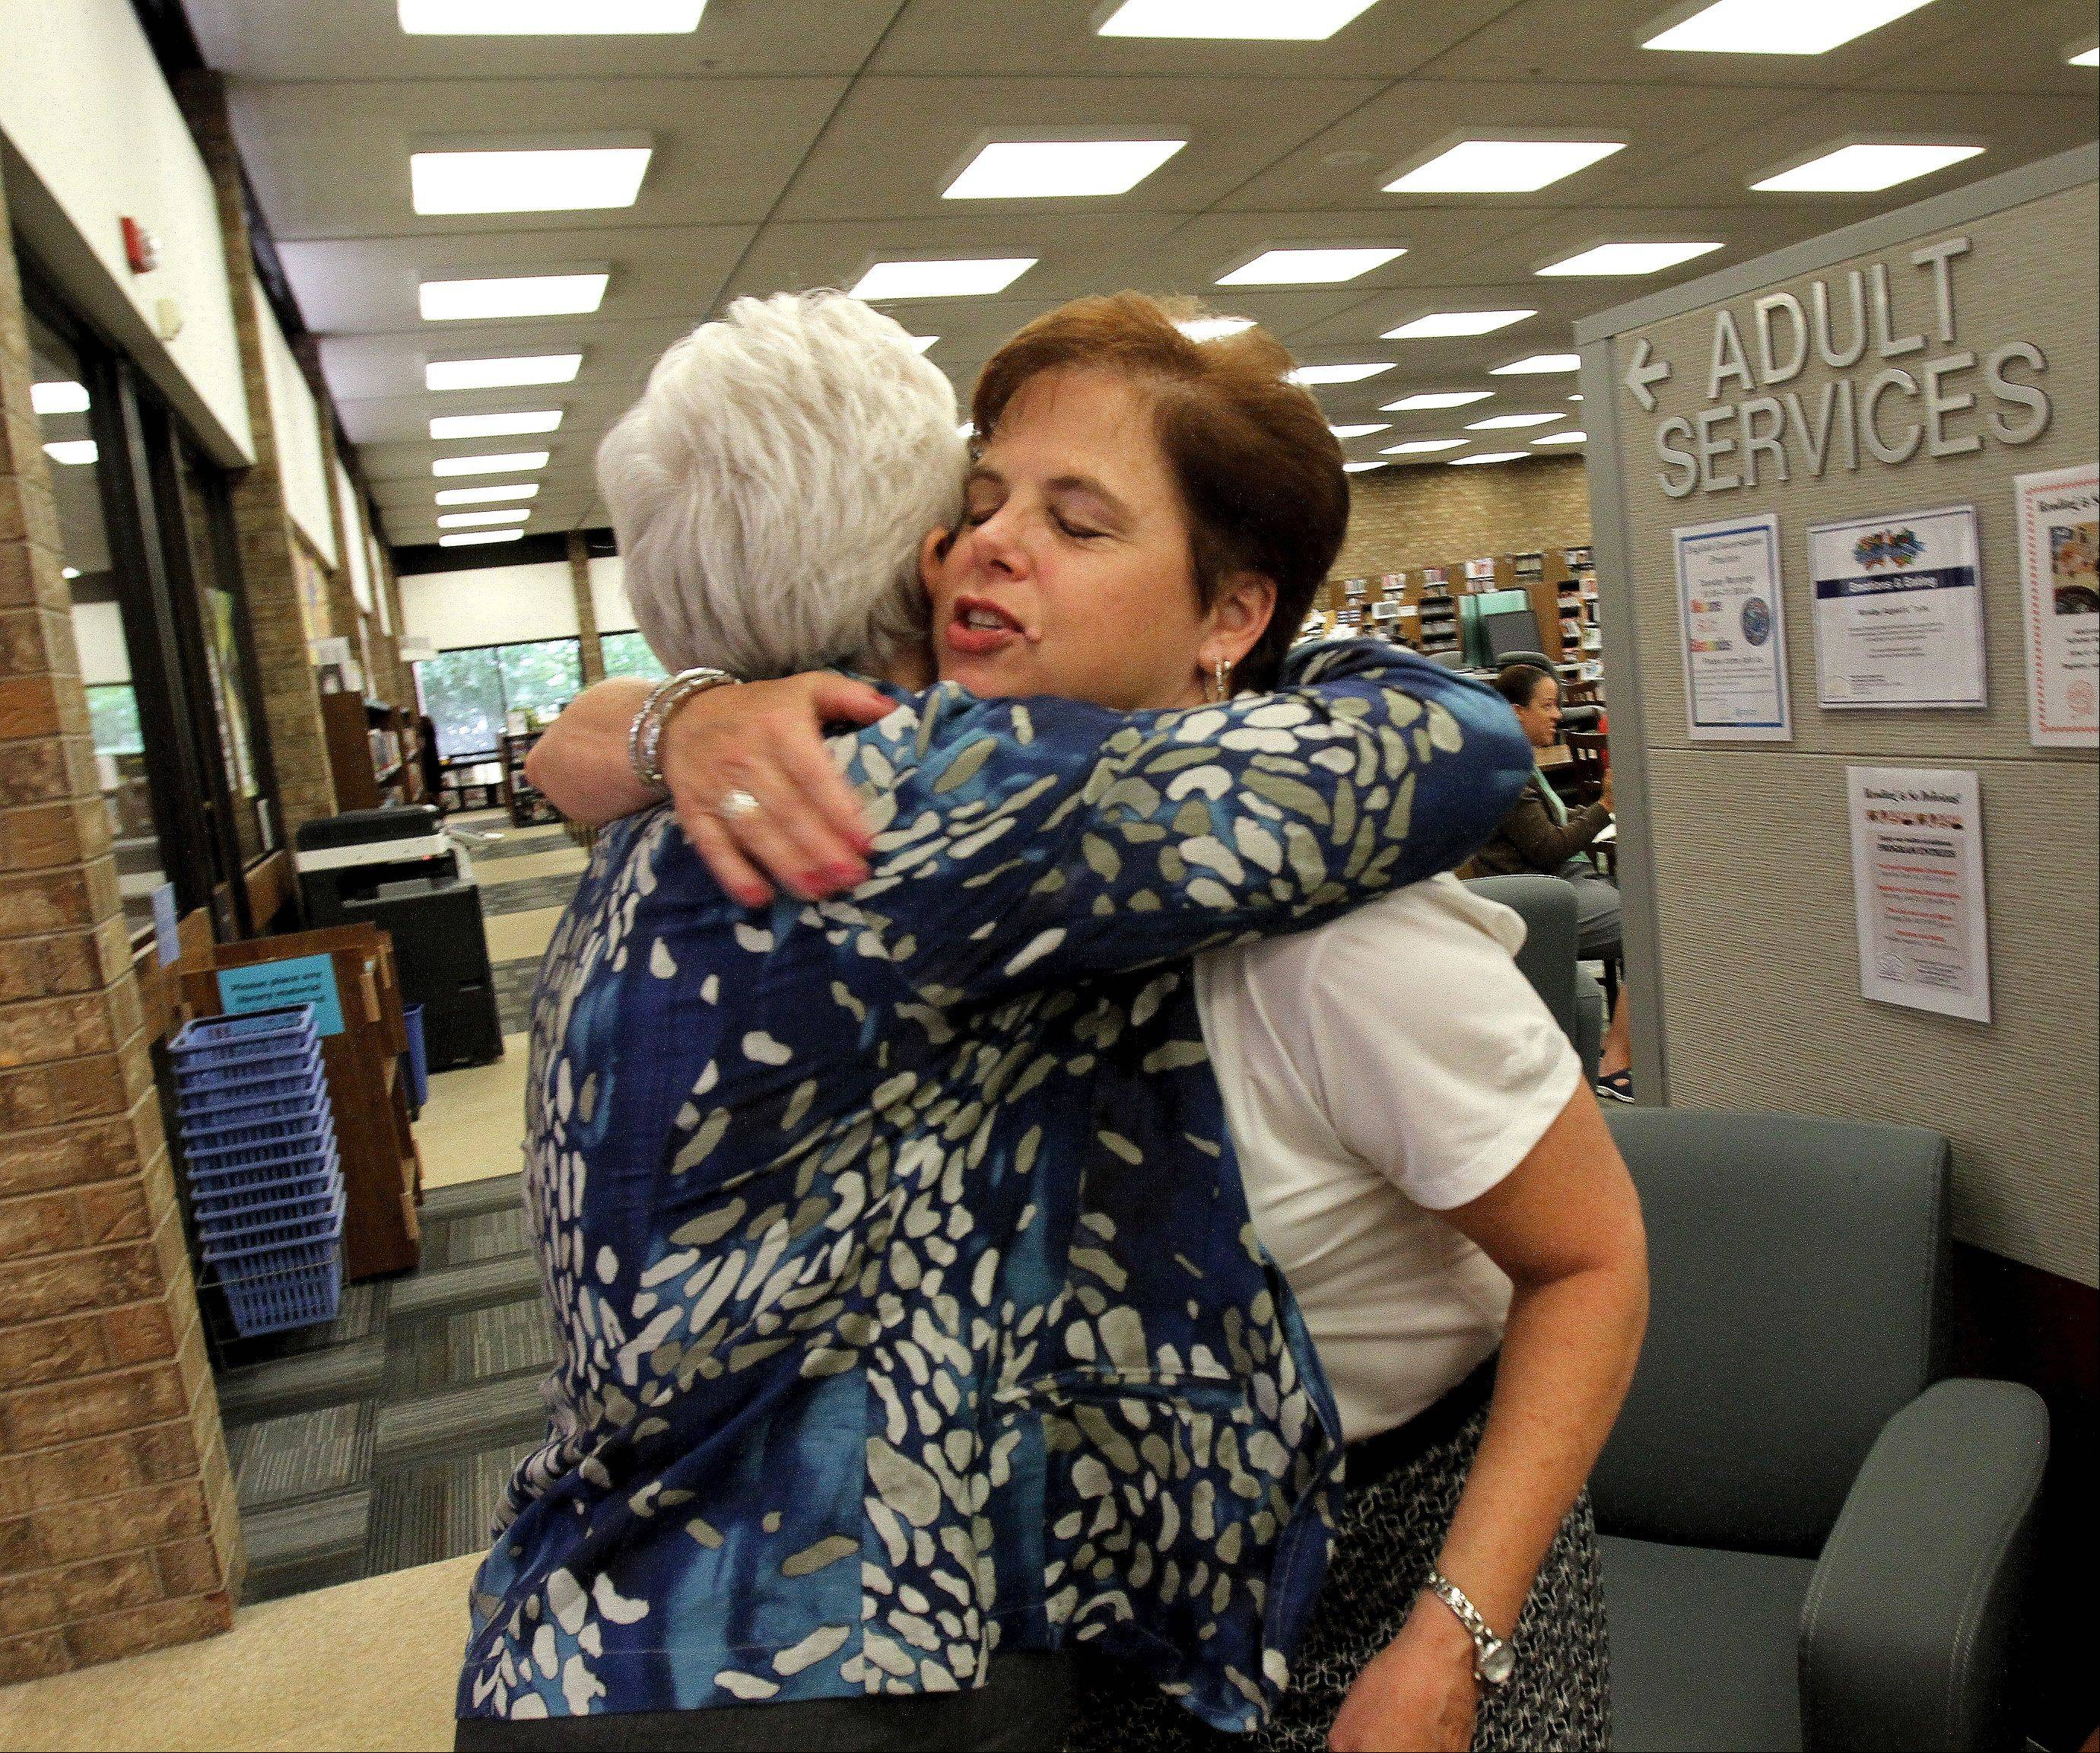 Anne Kennedy gives a hug to Mary Clemens, the interim director at the Carol Stream Public Library on Thursday. The library board voted 4-2 on Wednesday to dismiss Kennedy as director.